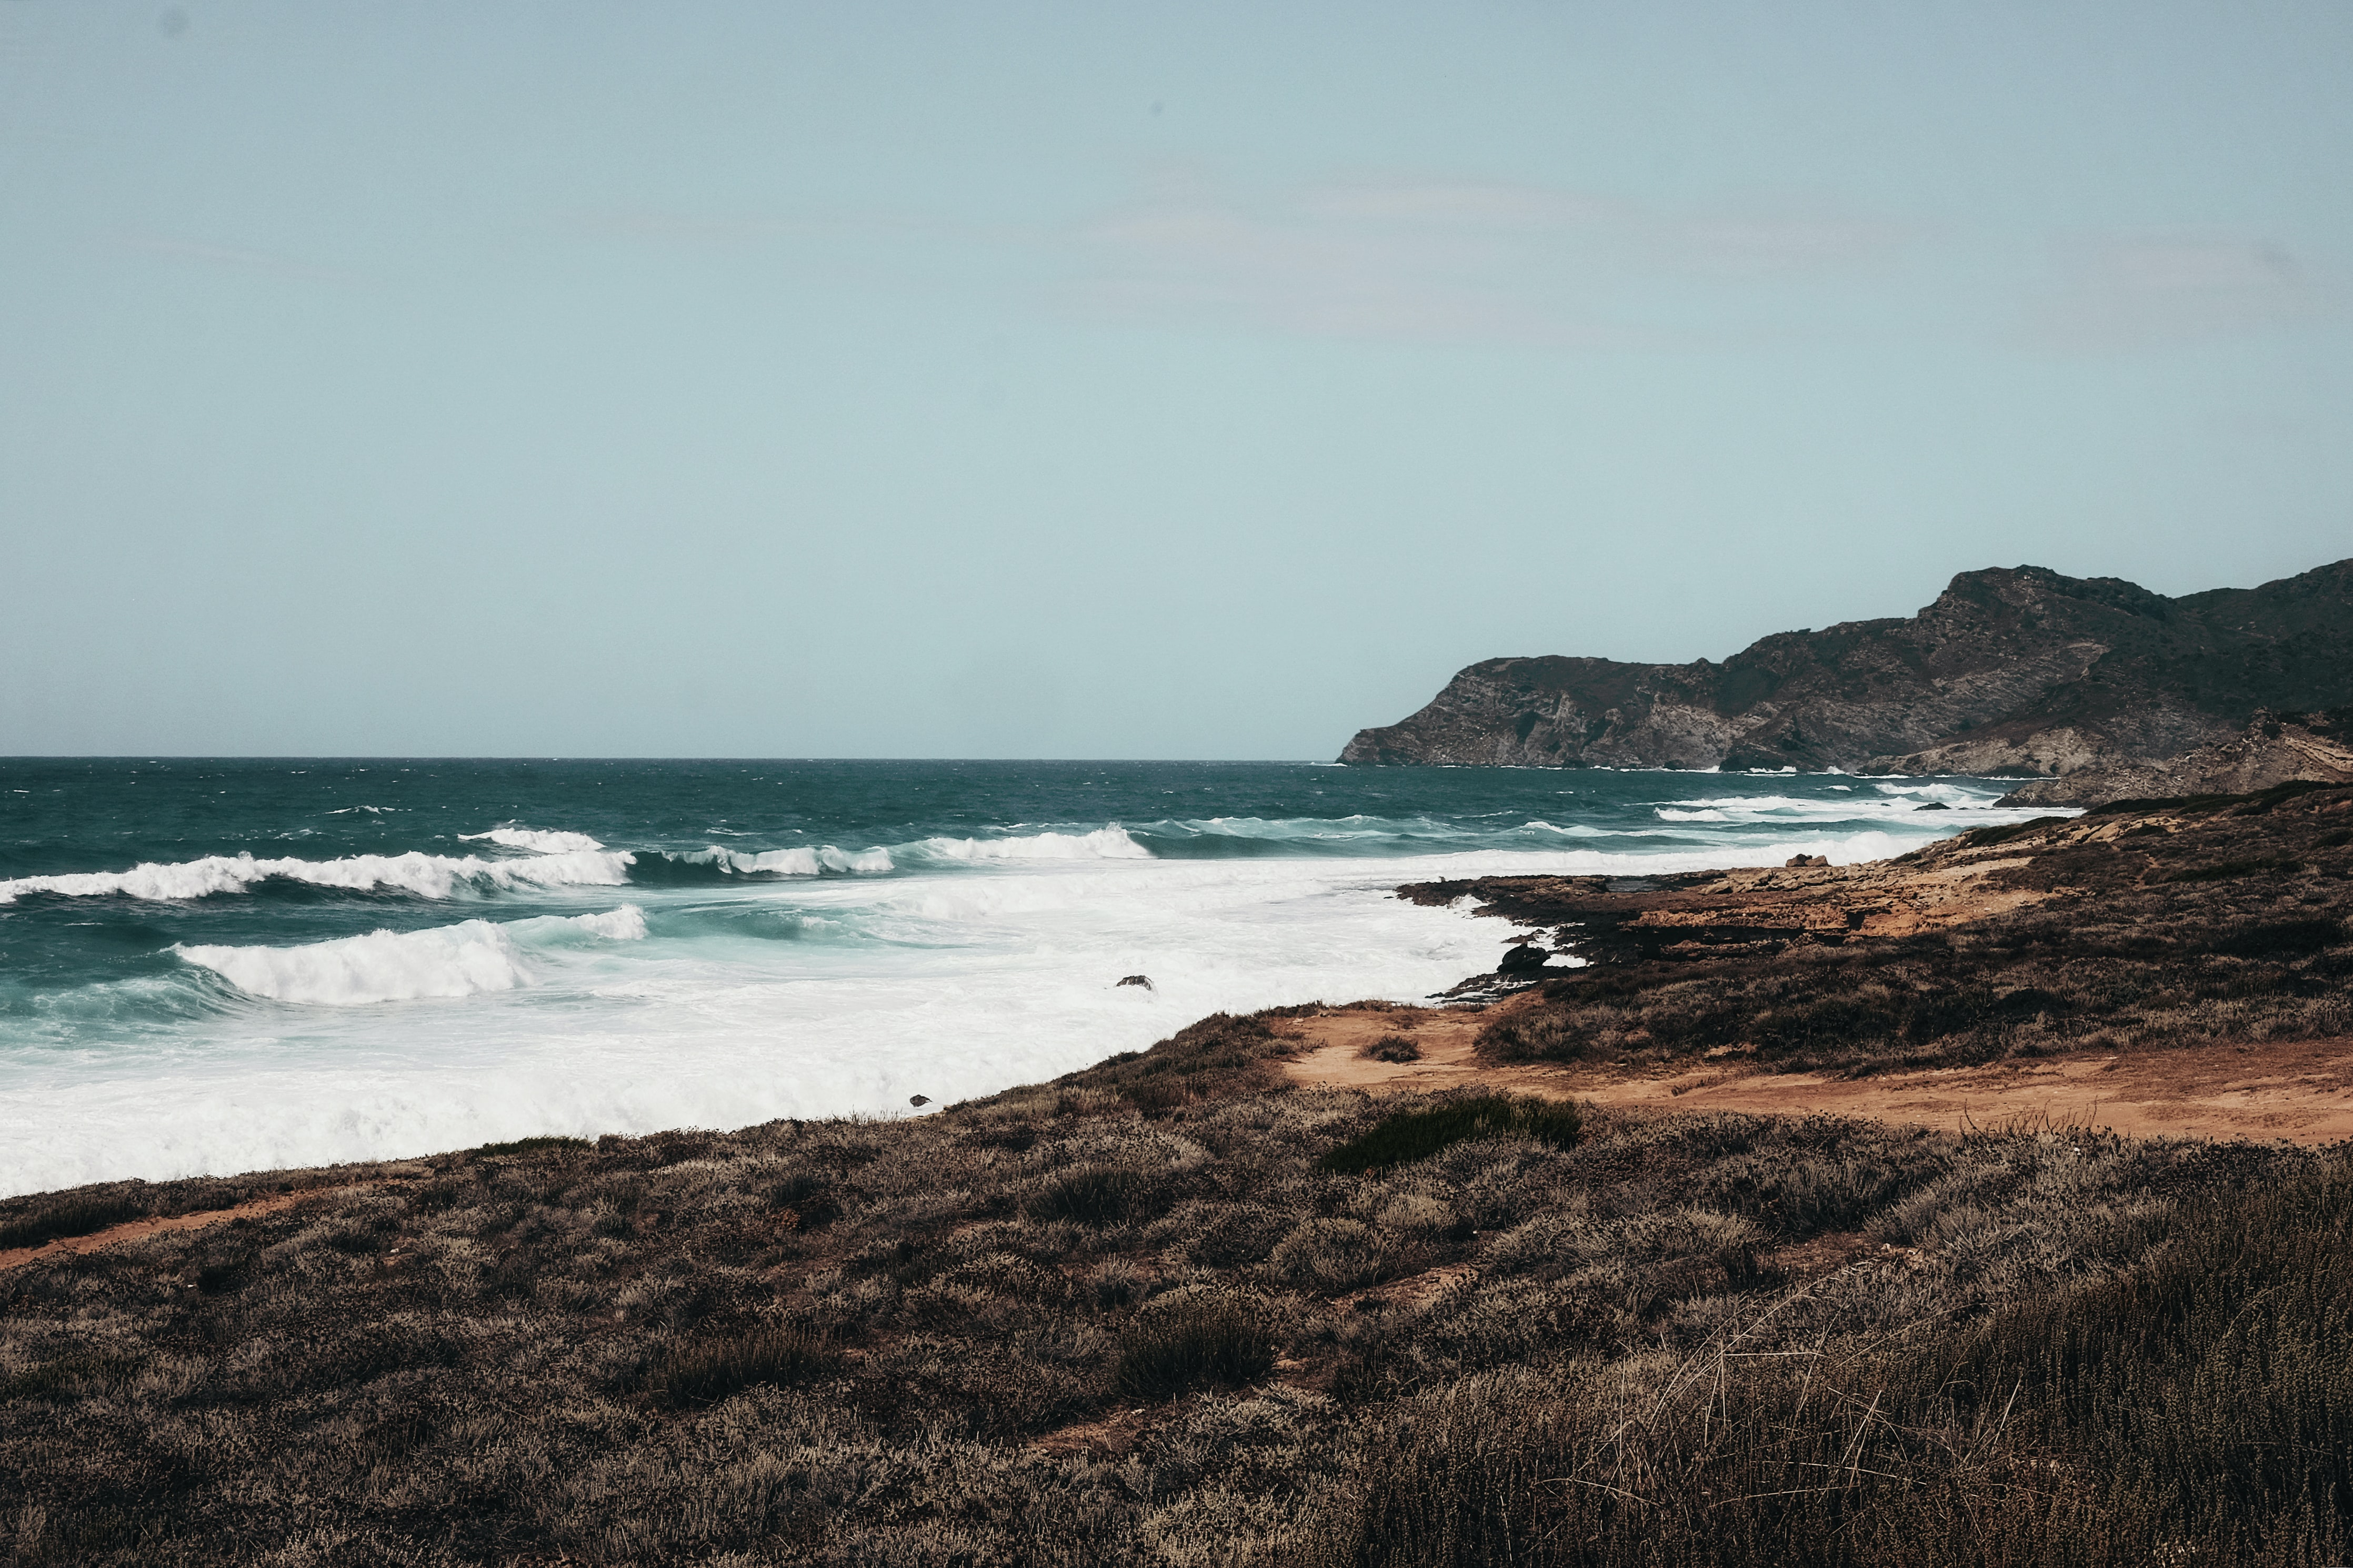 sea waves and rocky hills